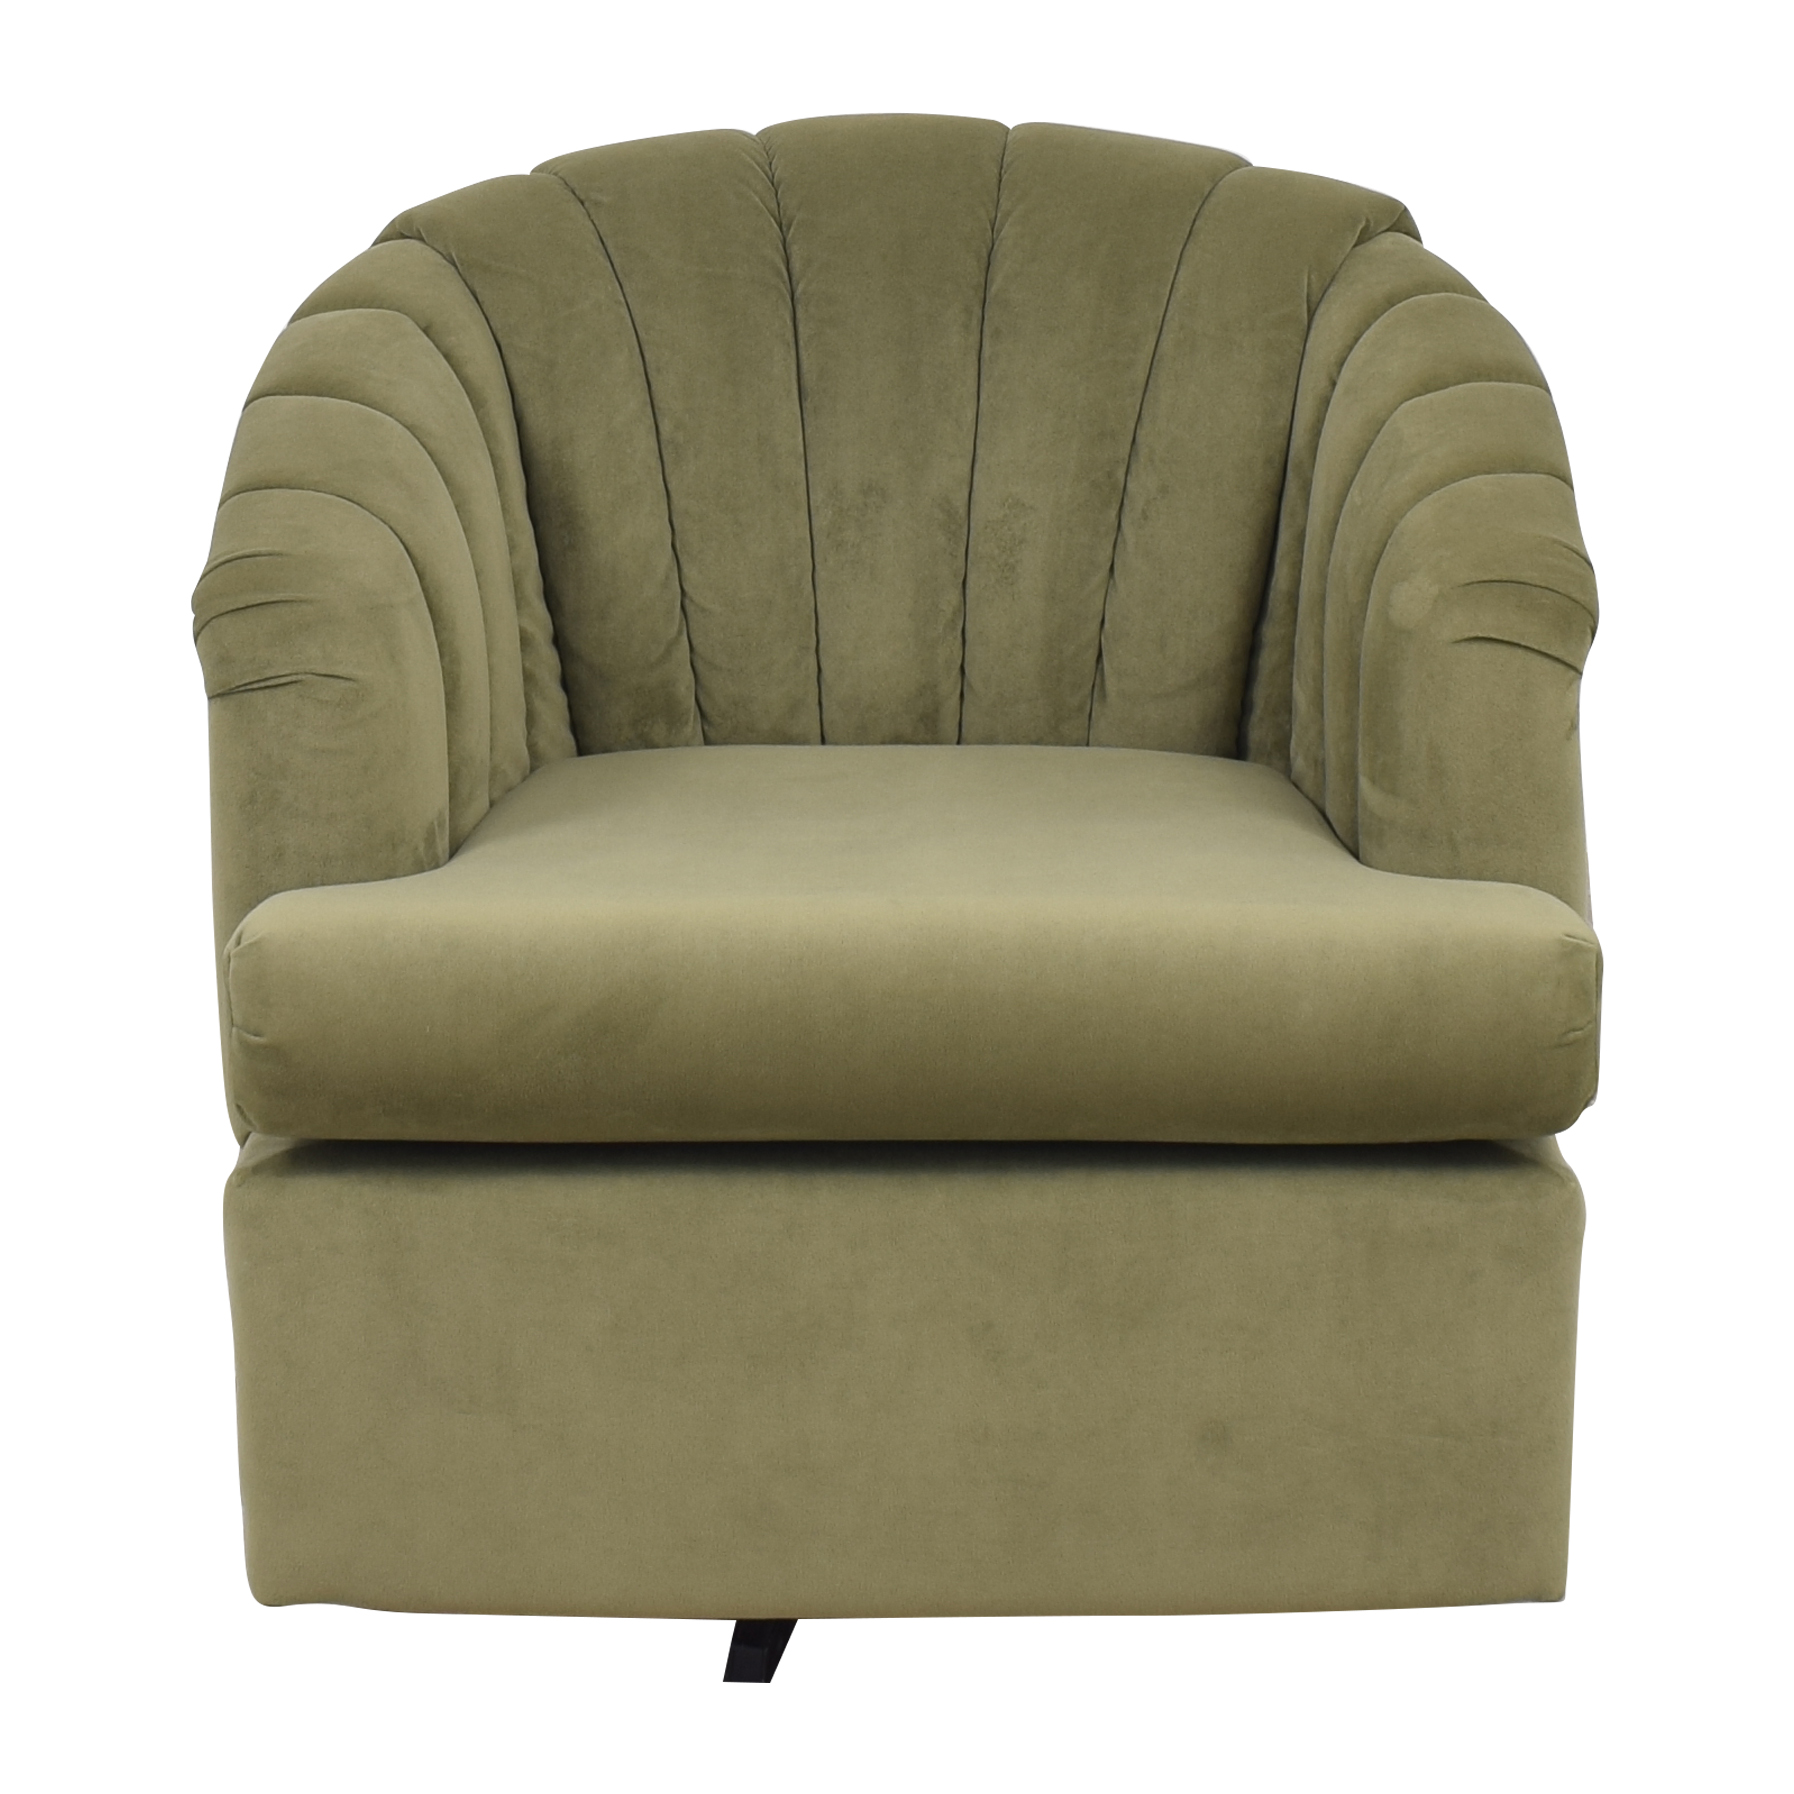 shop Best Chairs Elaine Swivel Barrel Chair Best Chairs Accent Chairs